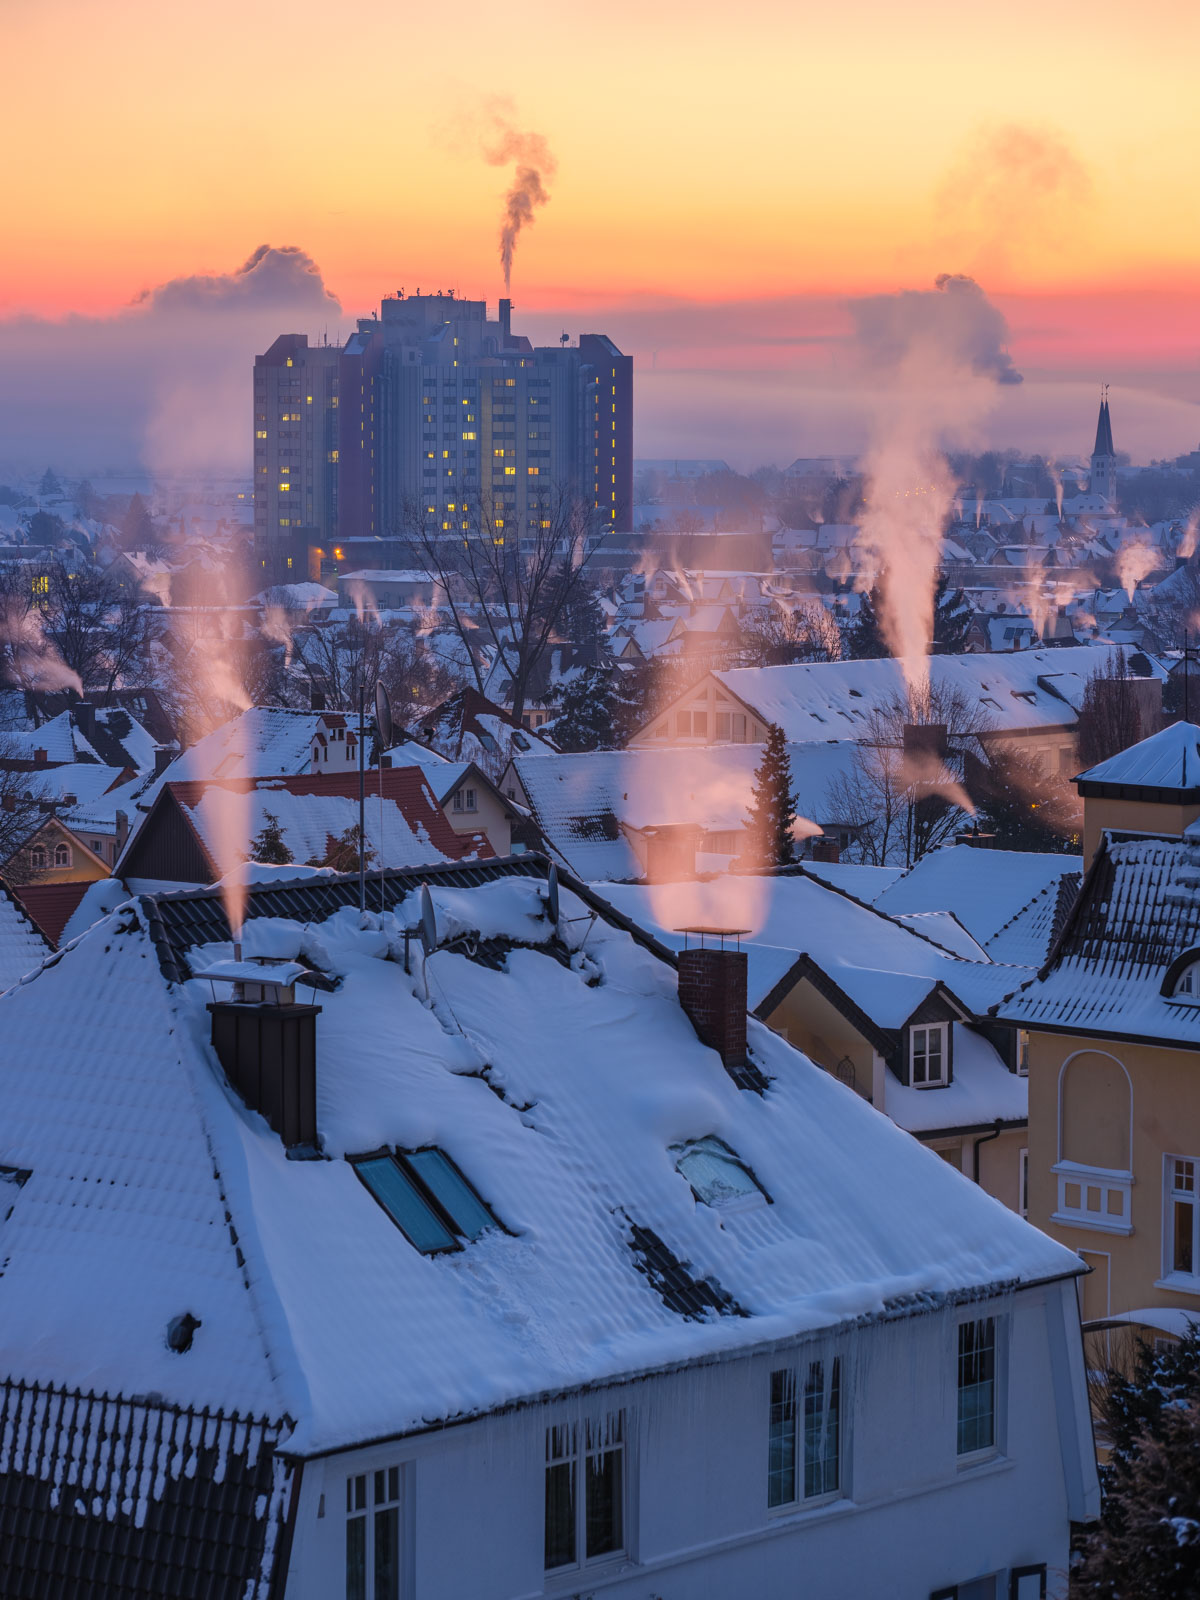 Early in the morning above the rooftops of Bielefeld on 13 February 2021 (Germany).